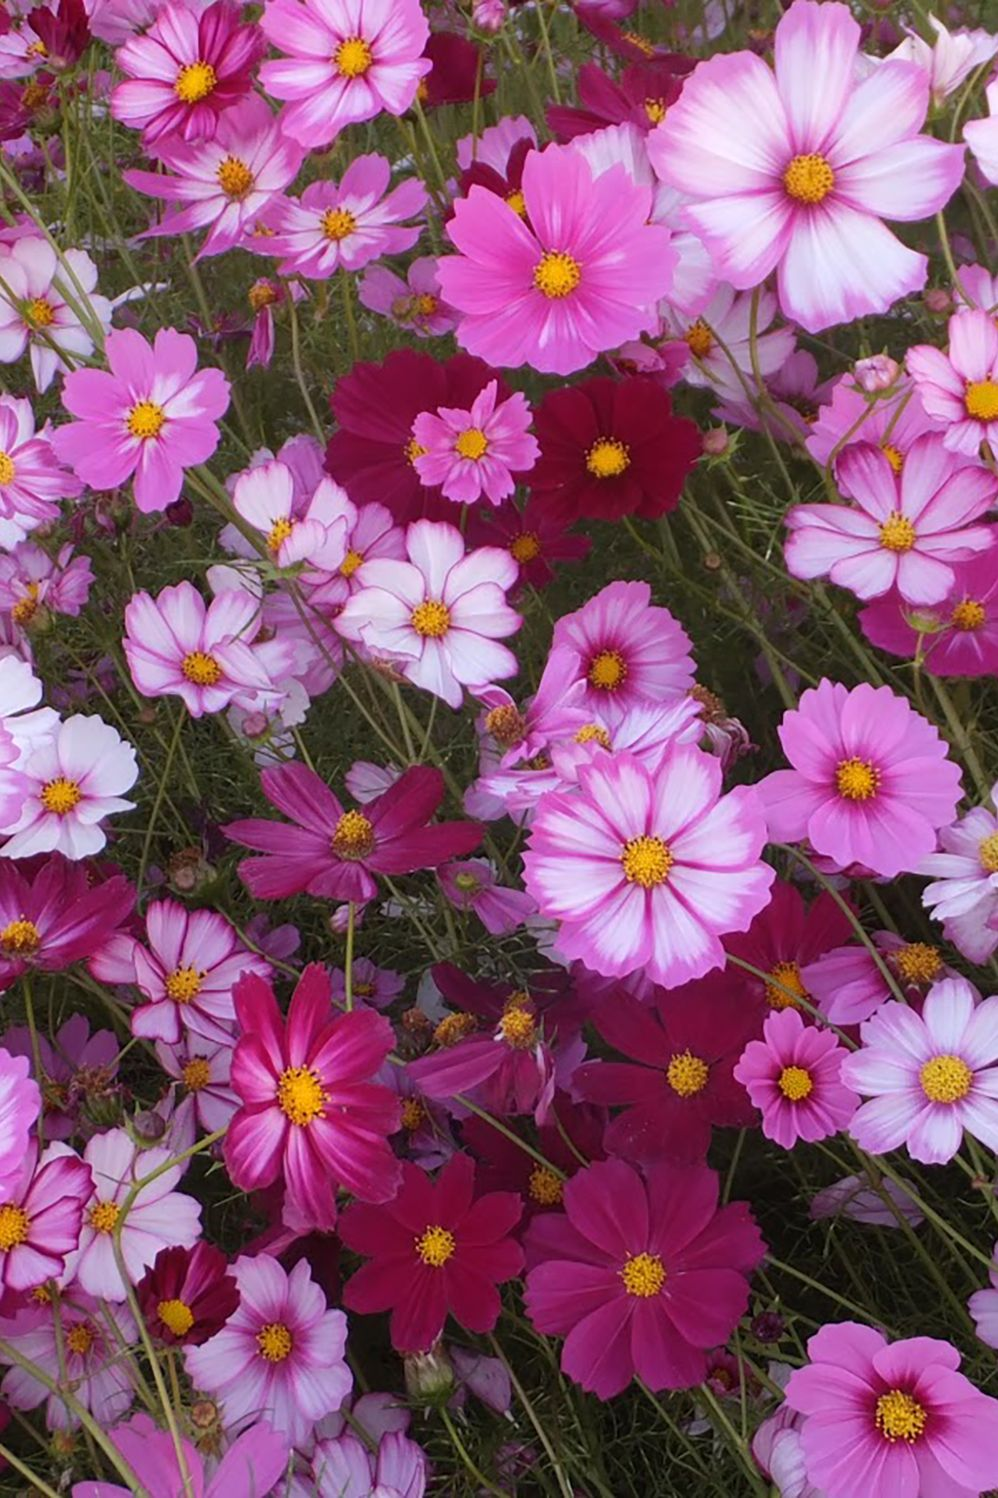 Cosmos In 2020 Flower Landscape Cosmos Flowers Meadow Photography